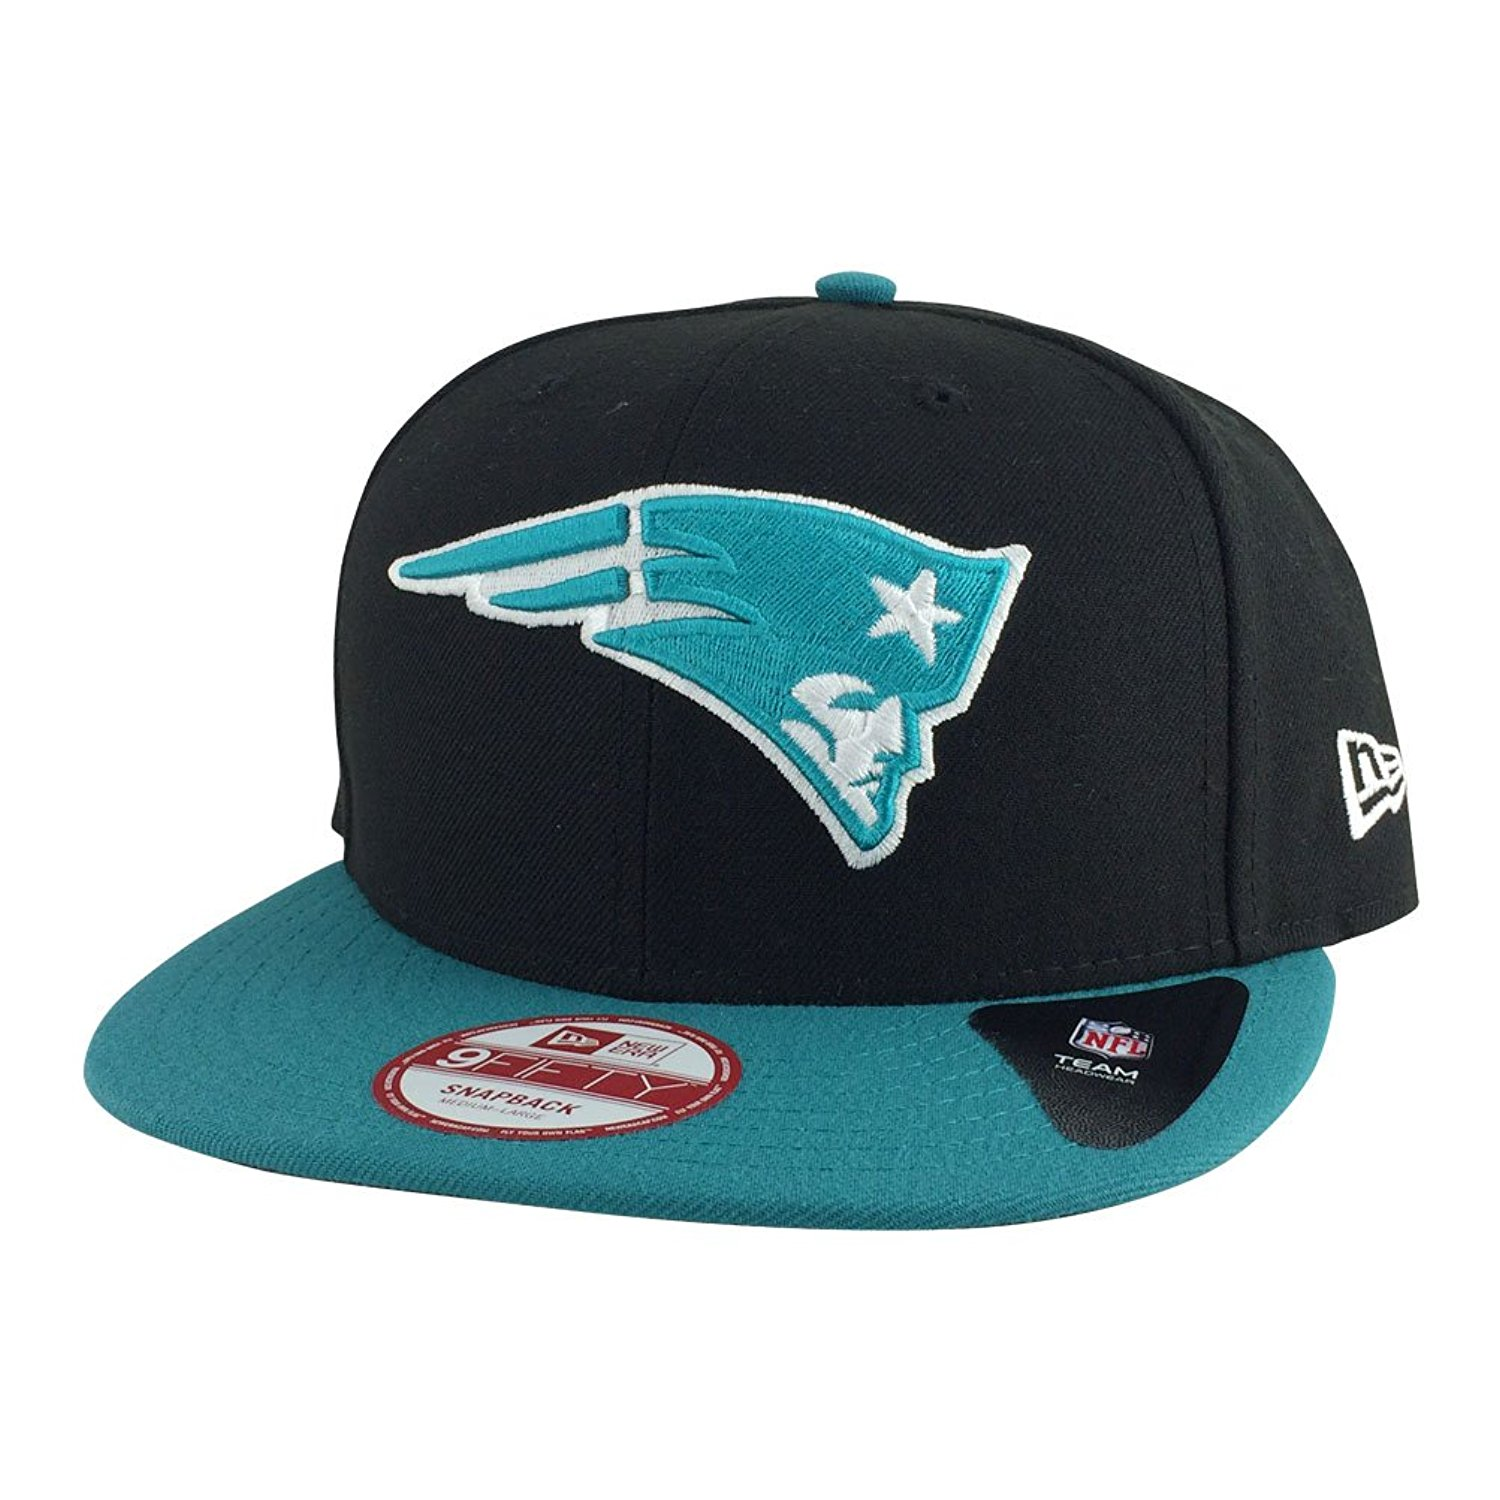 392c0b0bbc9 Get Quotations · New Era New England Patriots Baycik Black Teal Visor Snapback  Hat Cap